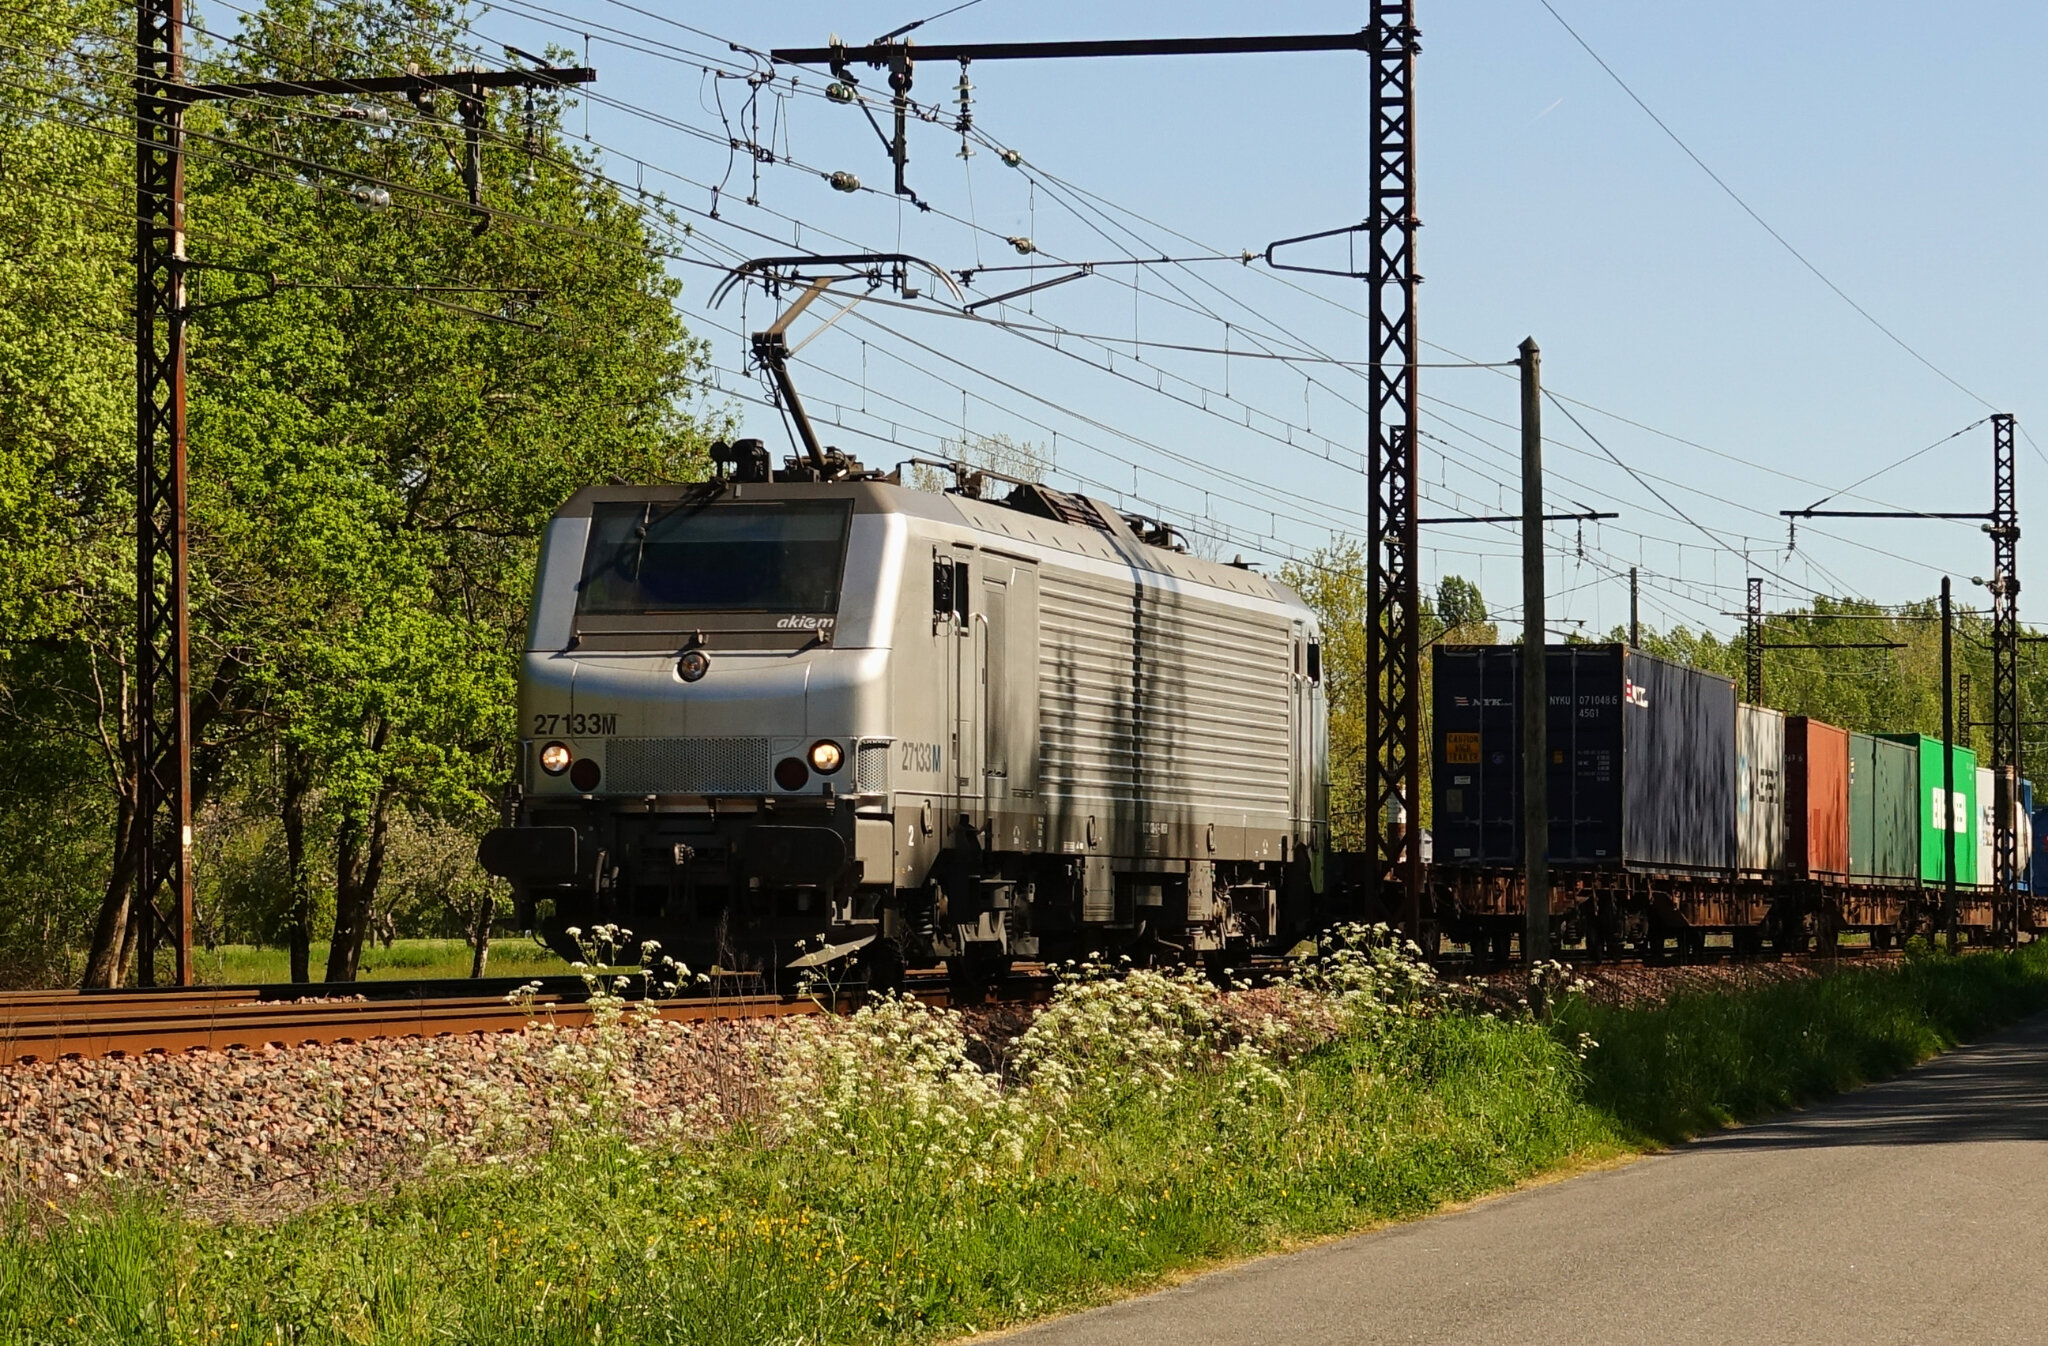 BB 27133 grise, Montboyer (Charente)